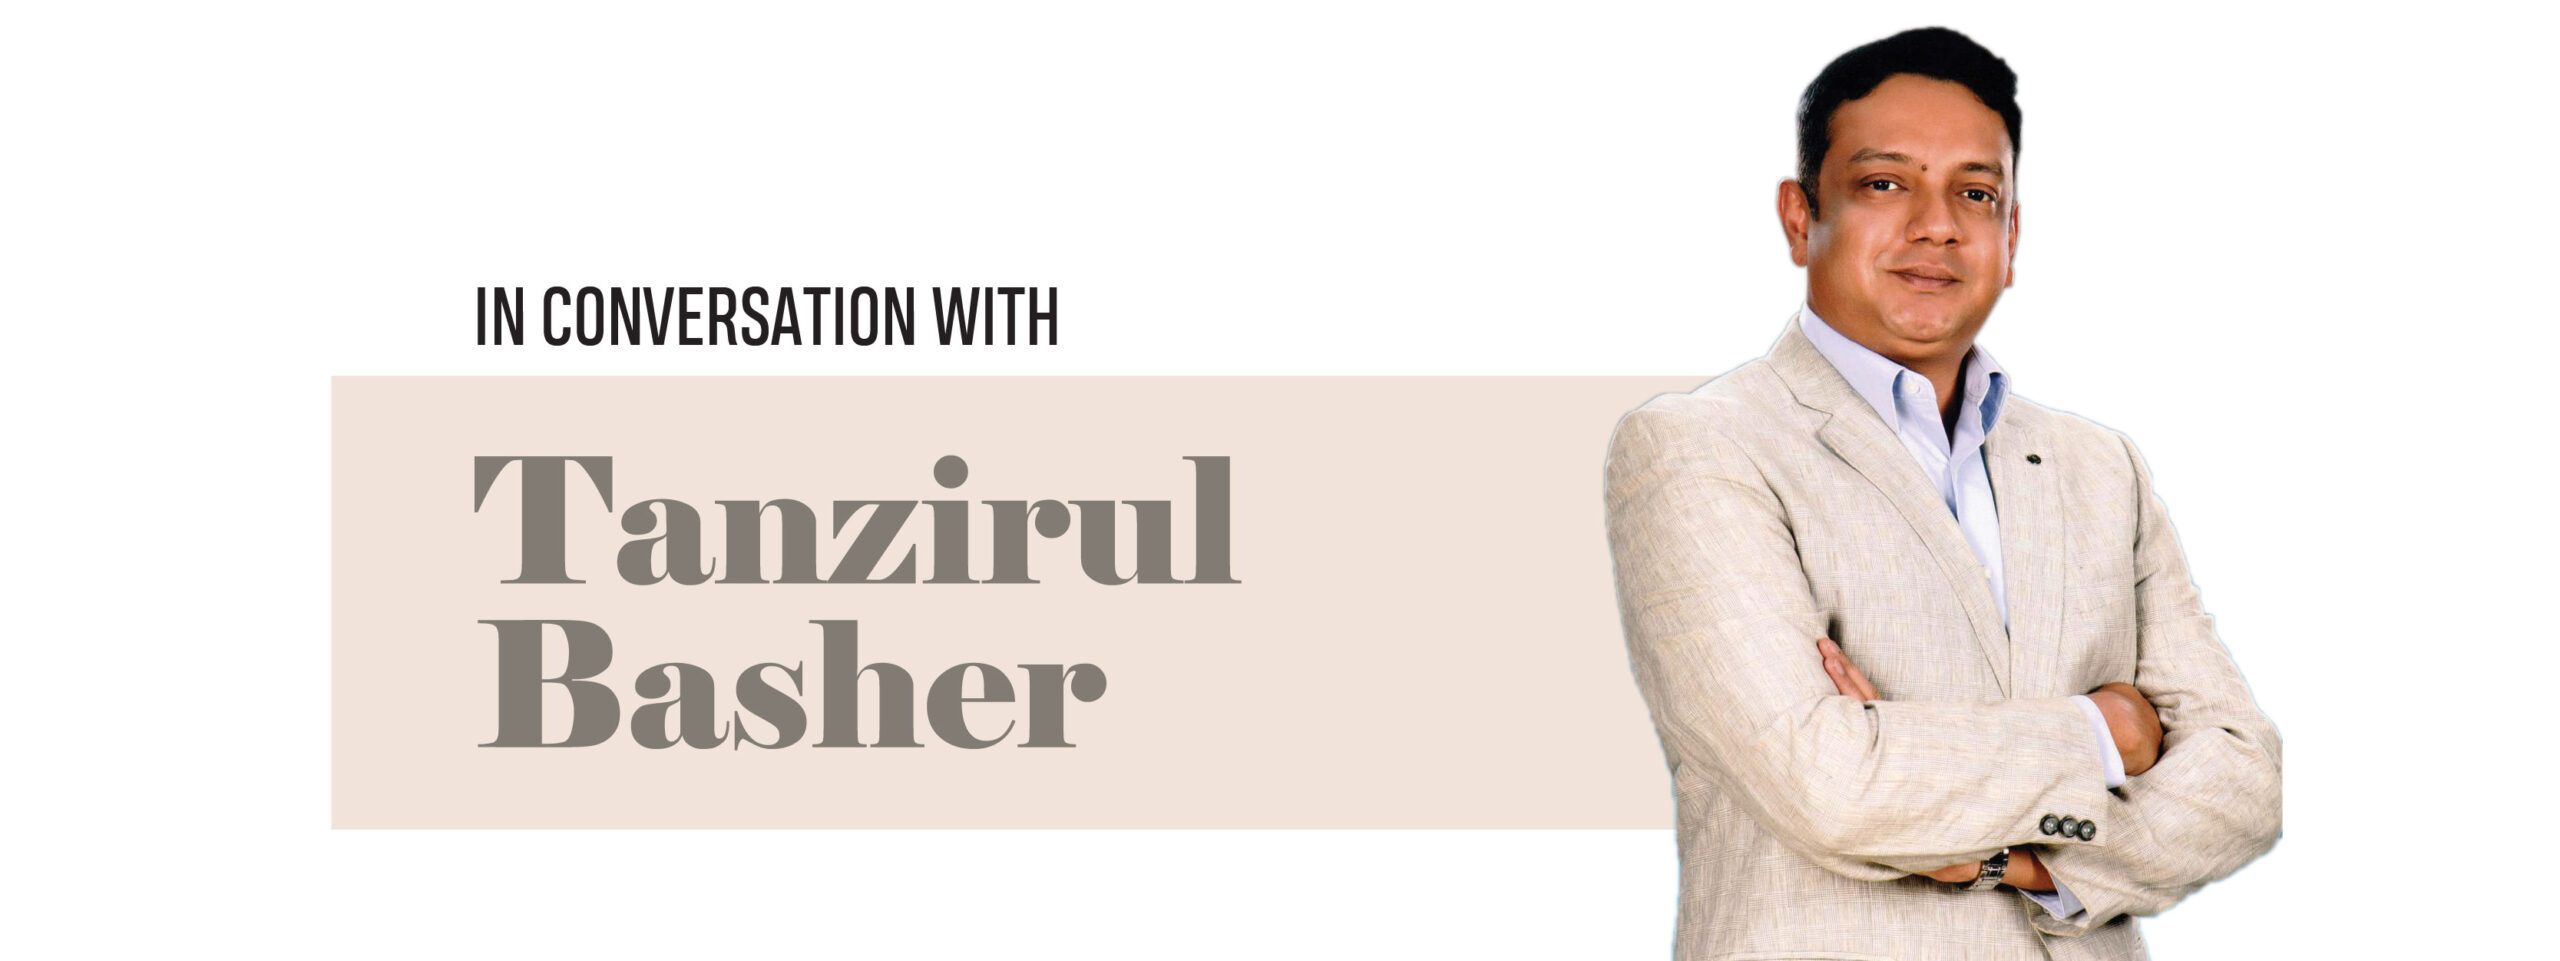 IN CONVERSATION WITH TANZIRUL BASHER